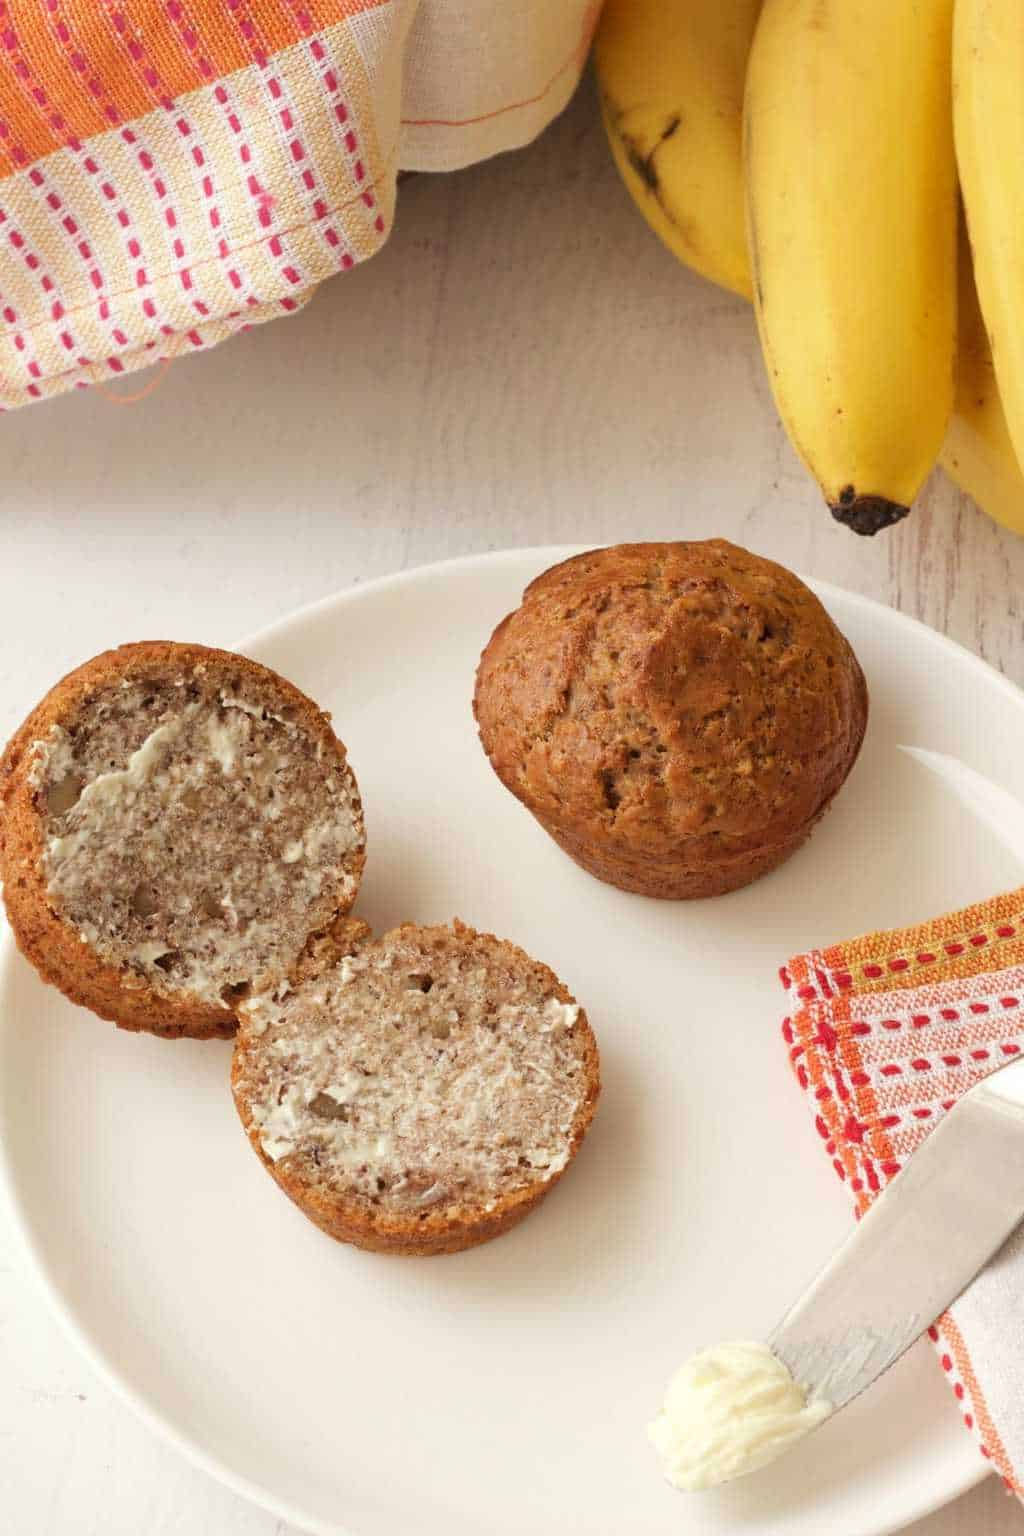 Easy Vegan Banana Bread Muffins. Delicious served warm or cold, with or without vegan butter! Moist, packed with banana flavor, and fabulous for breakfast! #vegan #lovingitvegan #bananabreadmuffins #muffins #breakfast